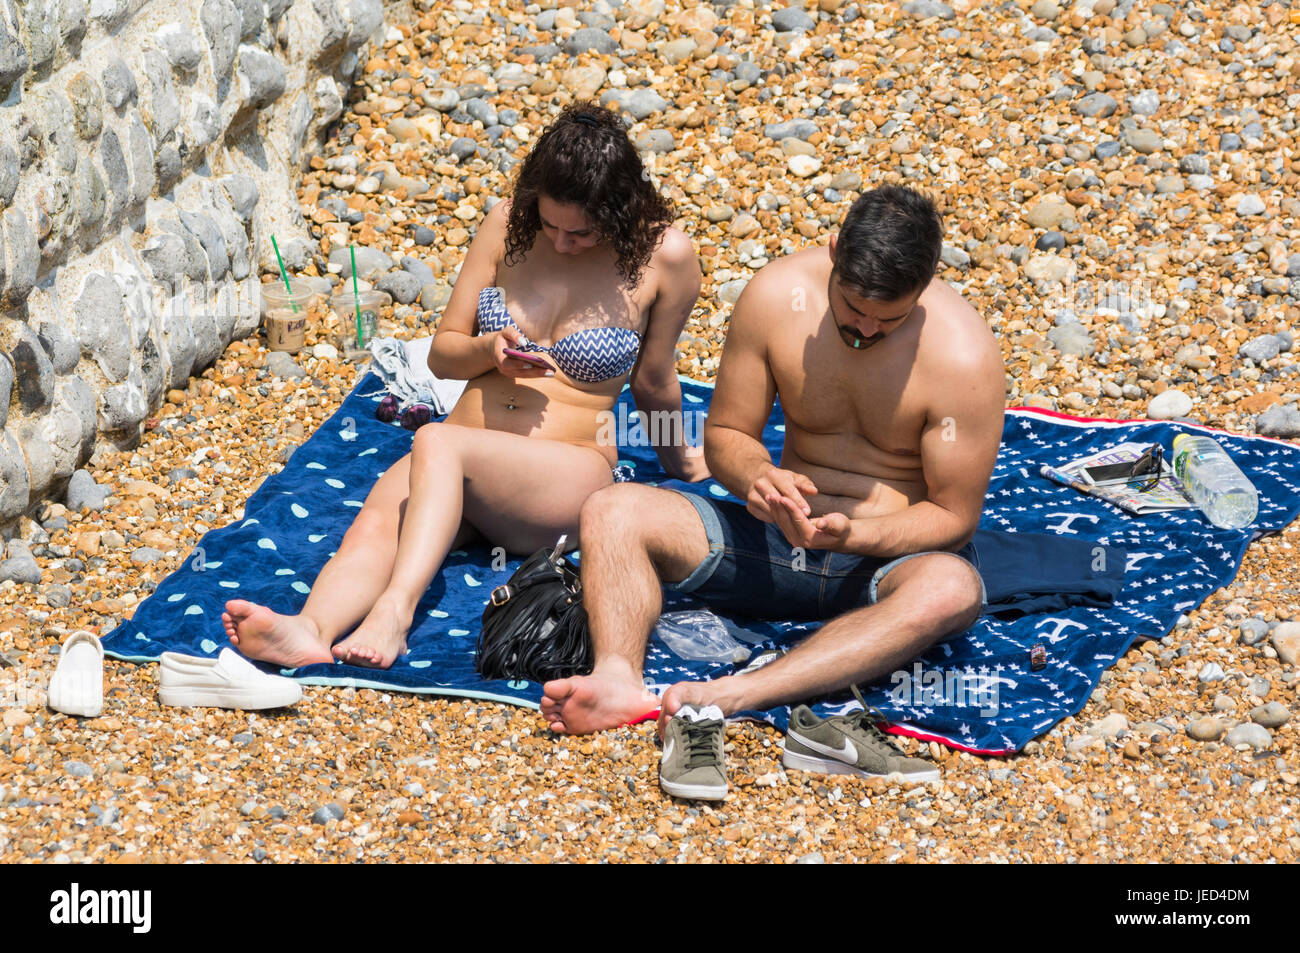 Young couple sunbathing on a beach doing their own thing. - Stock Image